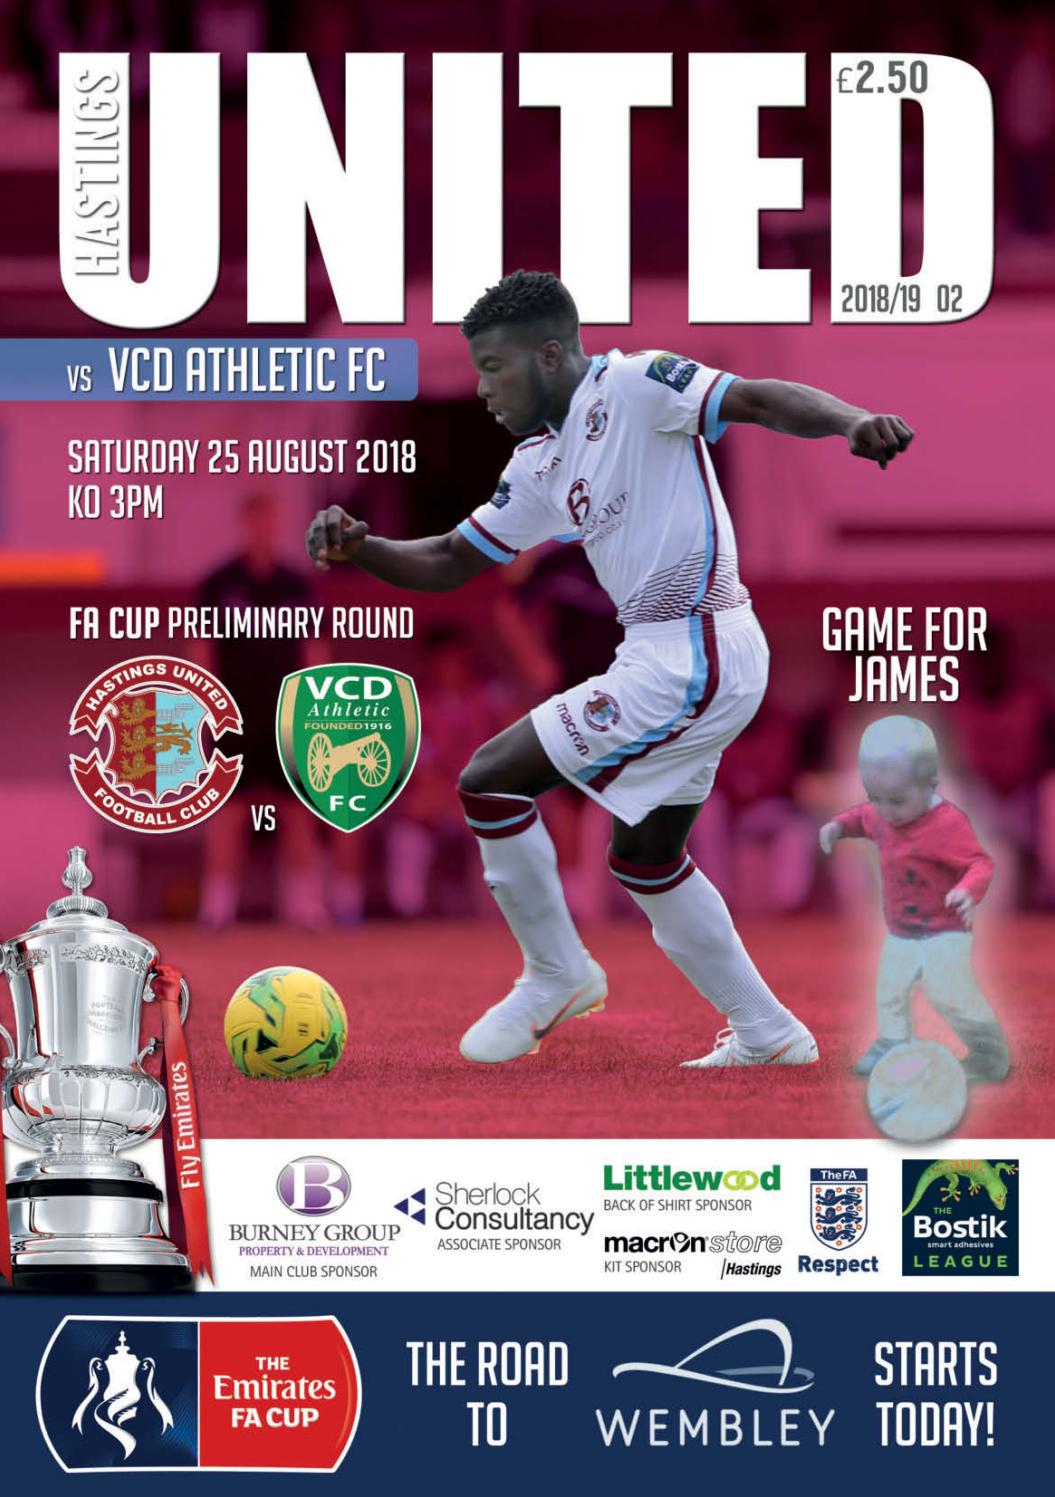 1b7ea9b8d17 HUFC vs VCD Athletic FC by HUFC Programmes - issuu